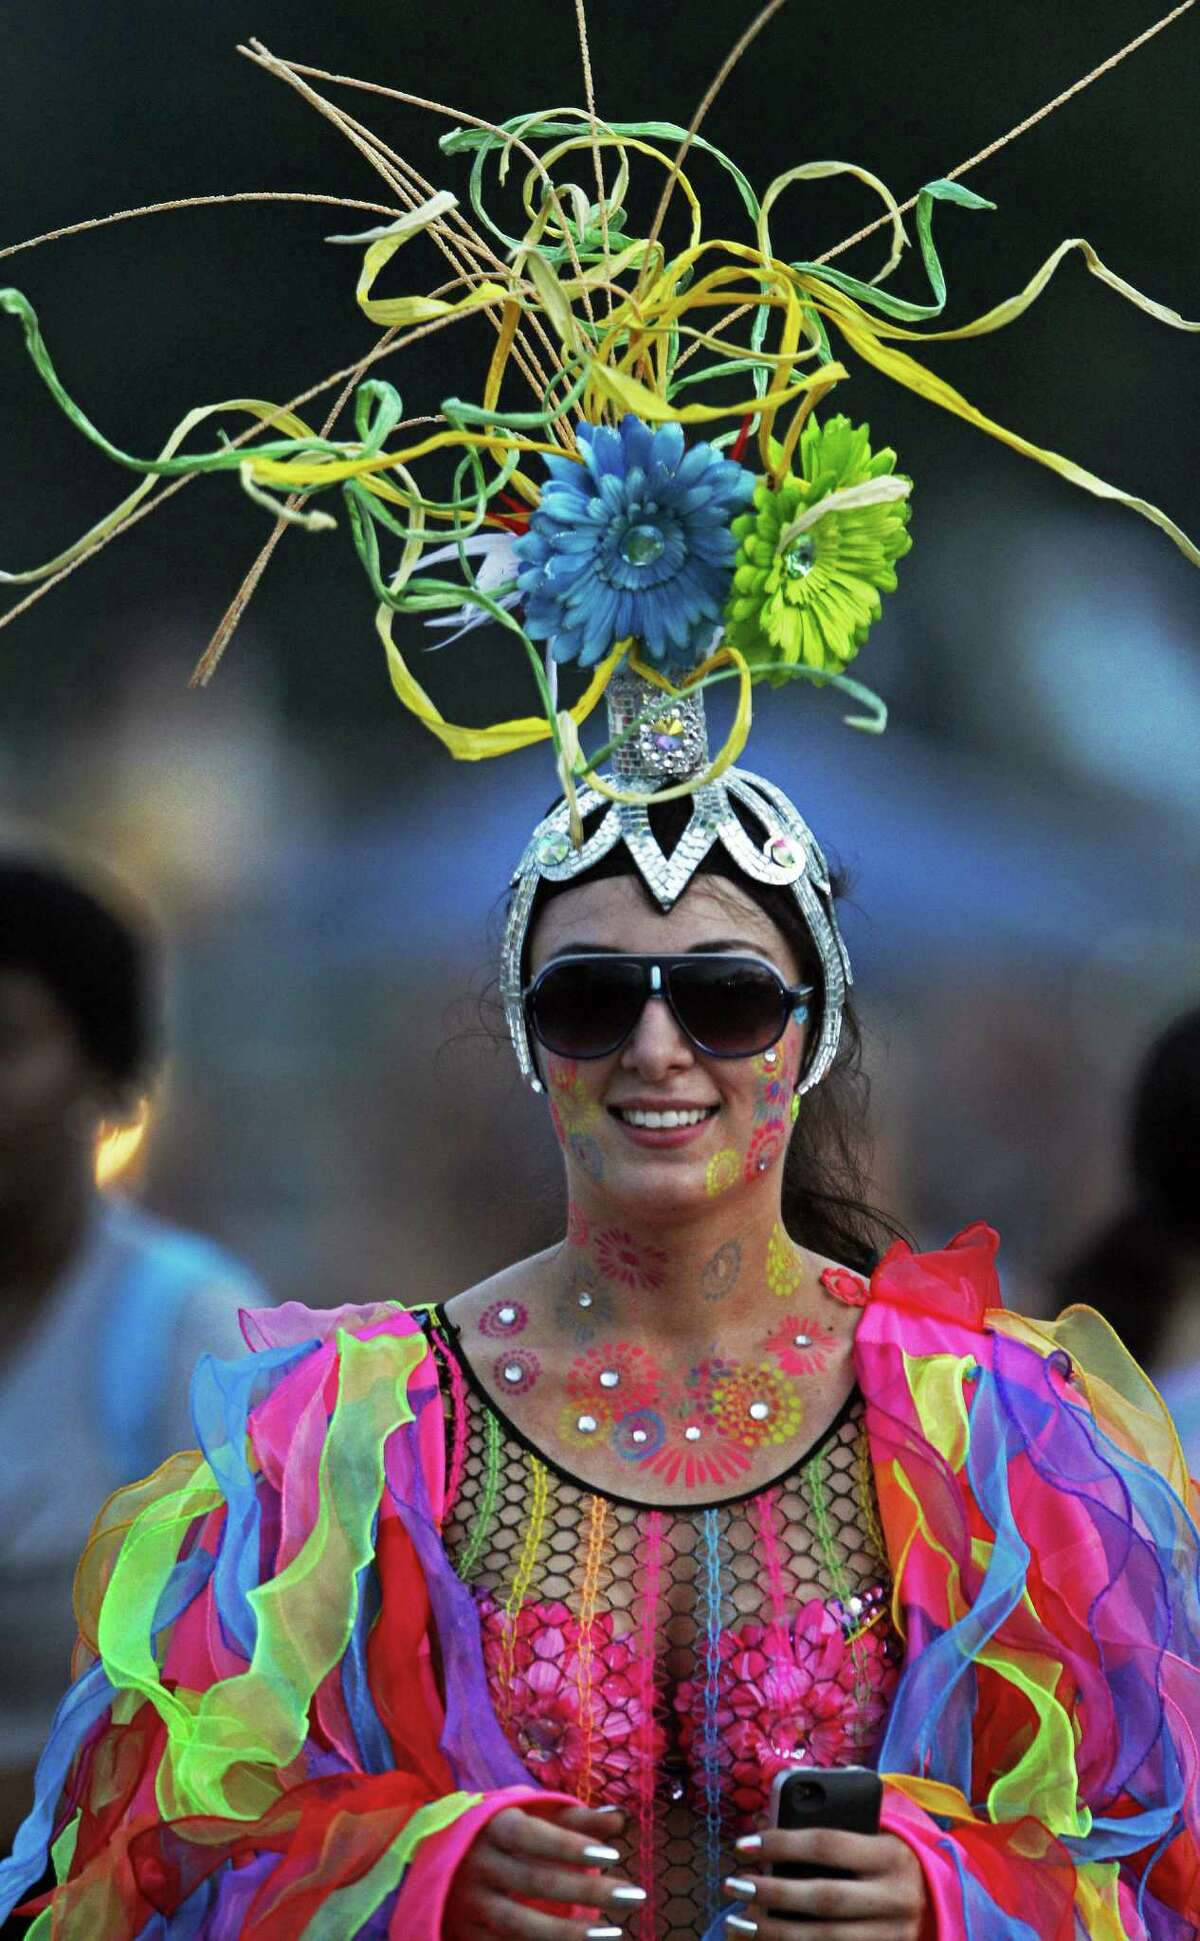 Valerie Biles is dressed in costume trying to be selected as Ms. Bonnaroo at the Bonnaroo Music & Arts Festival on Thursday, June 12, 2014, in Manchester, Tenn. (Photo by Wade Payne/Invision/AP)